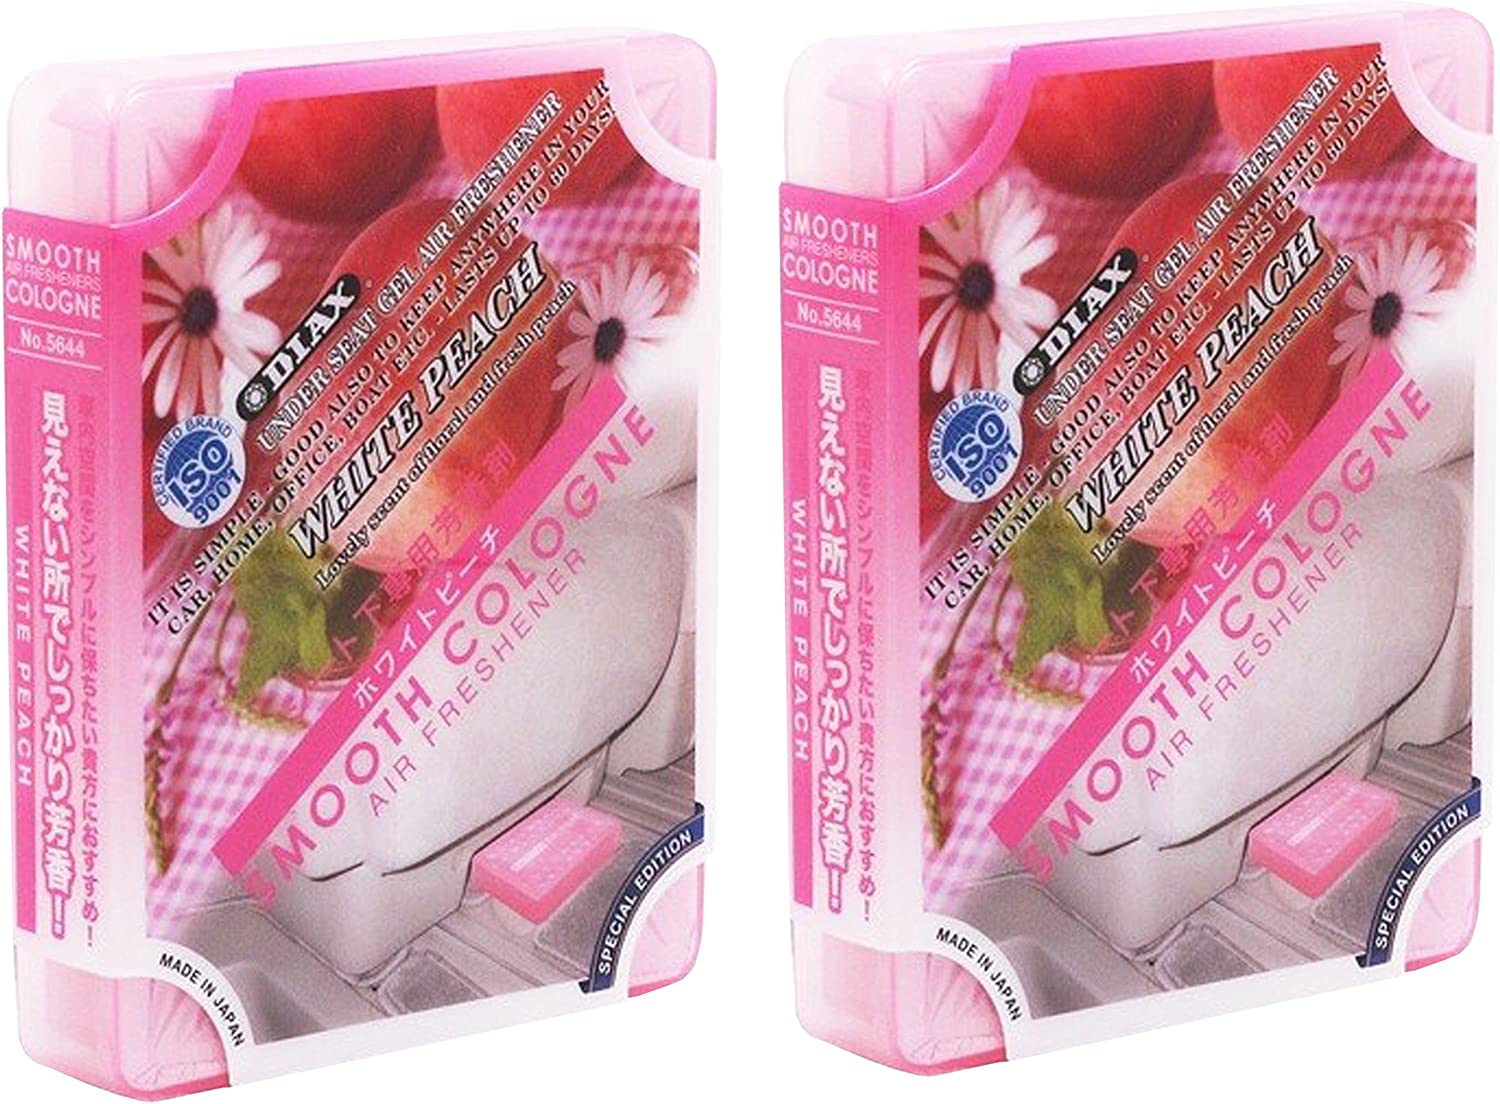 Smooth Cologne 2-Pack White Peach Scent Luxury Air Freshener JDM Genuine Diax Japan for Home/Office/Car/auto/RV